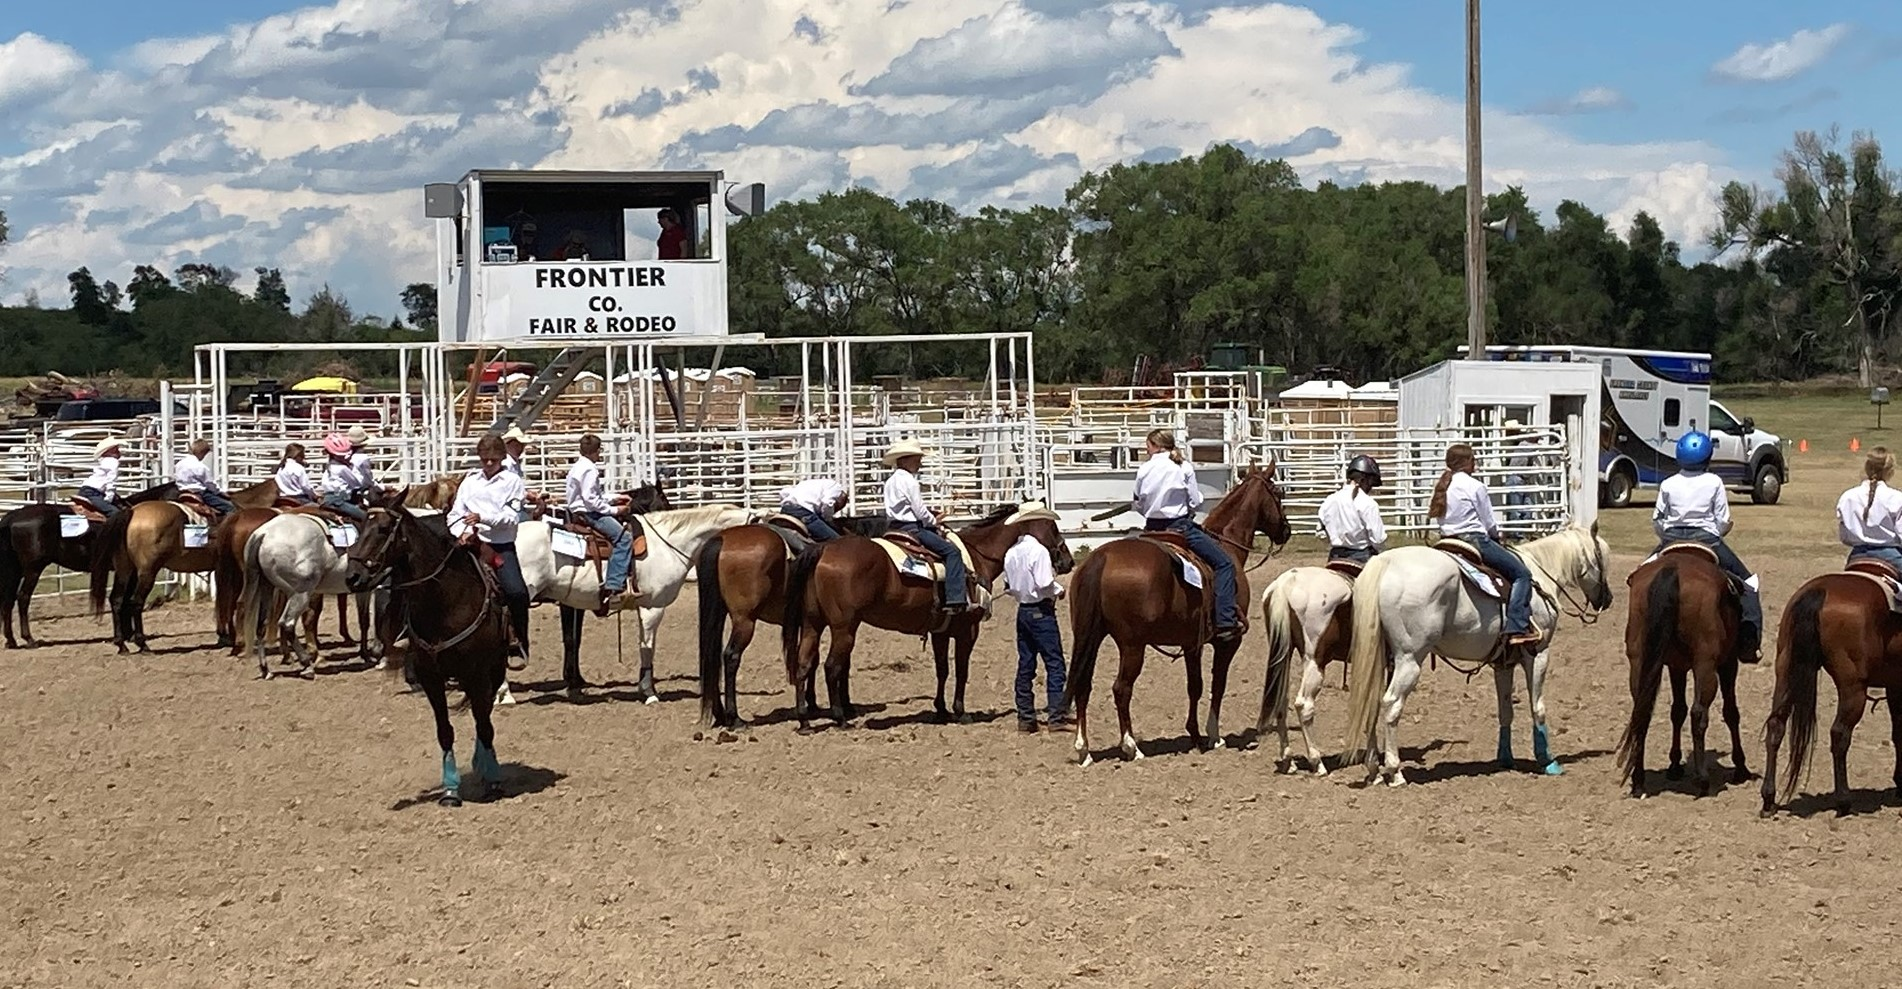 The 4-H Horse Show at Frontier County was Wednesday in Stockville. (Photo provided by Nebraska Extension Frontier County)